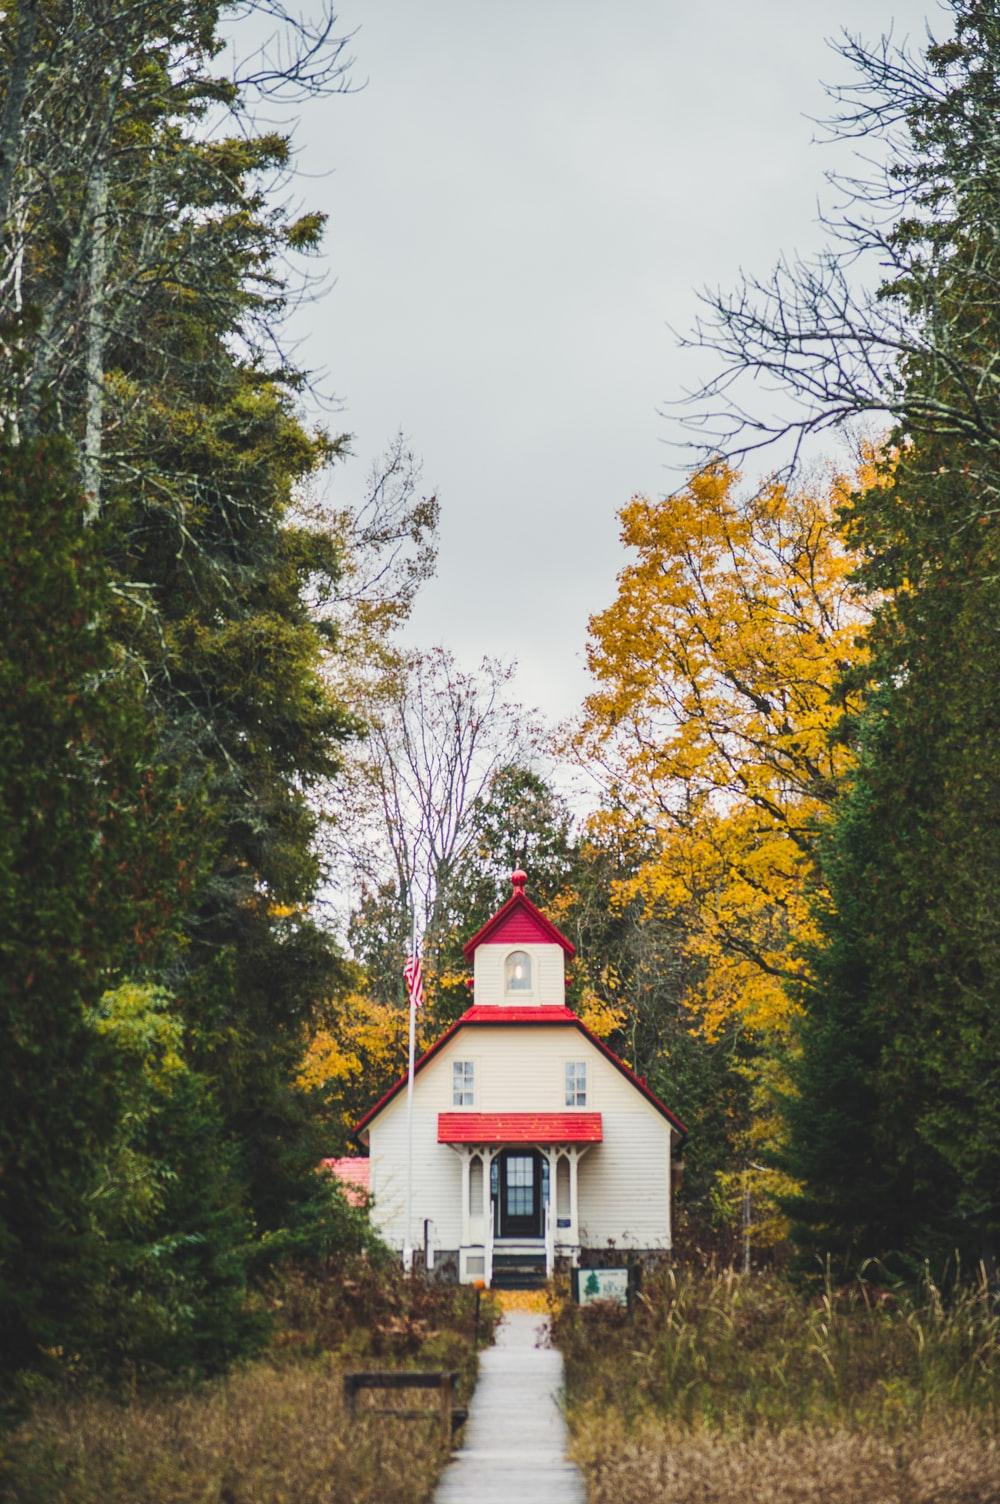 white and red house surrounded by trees